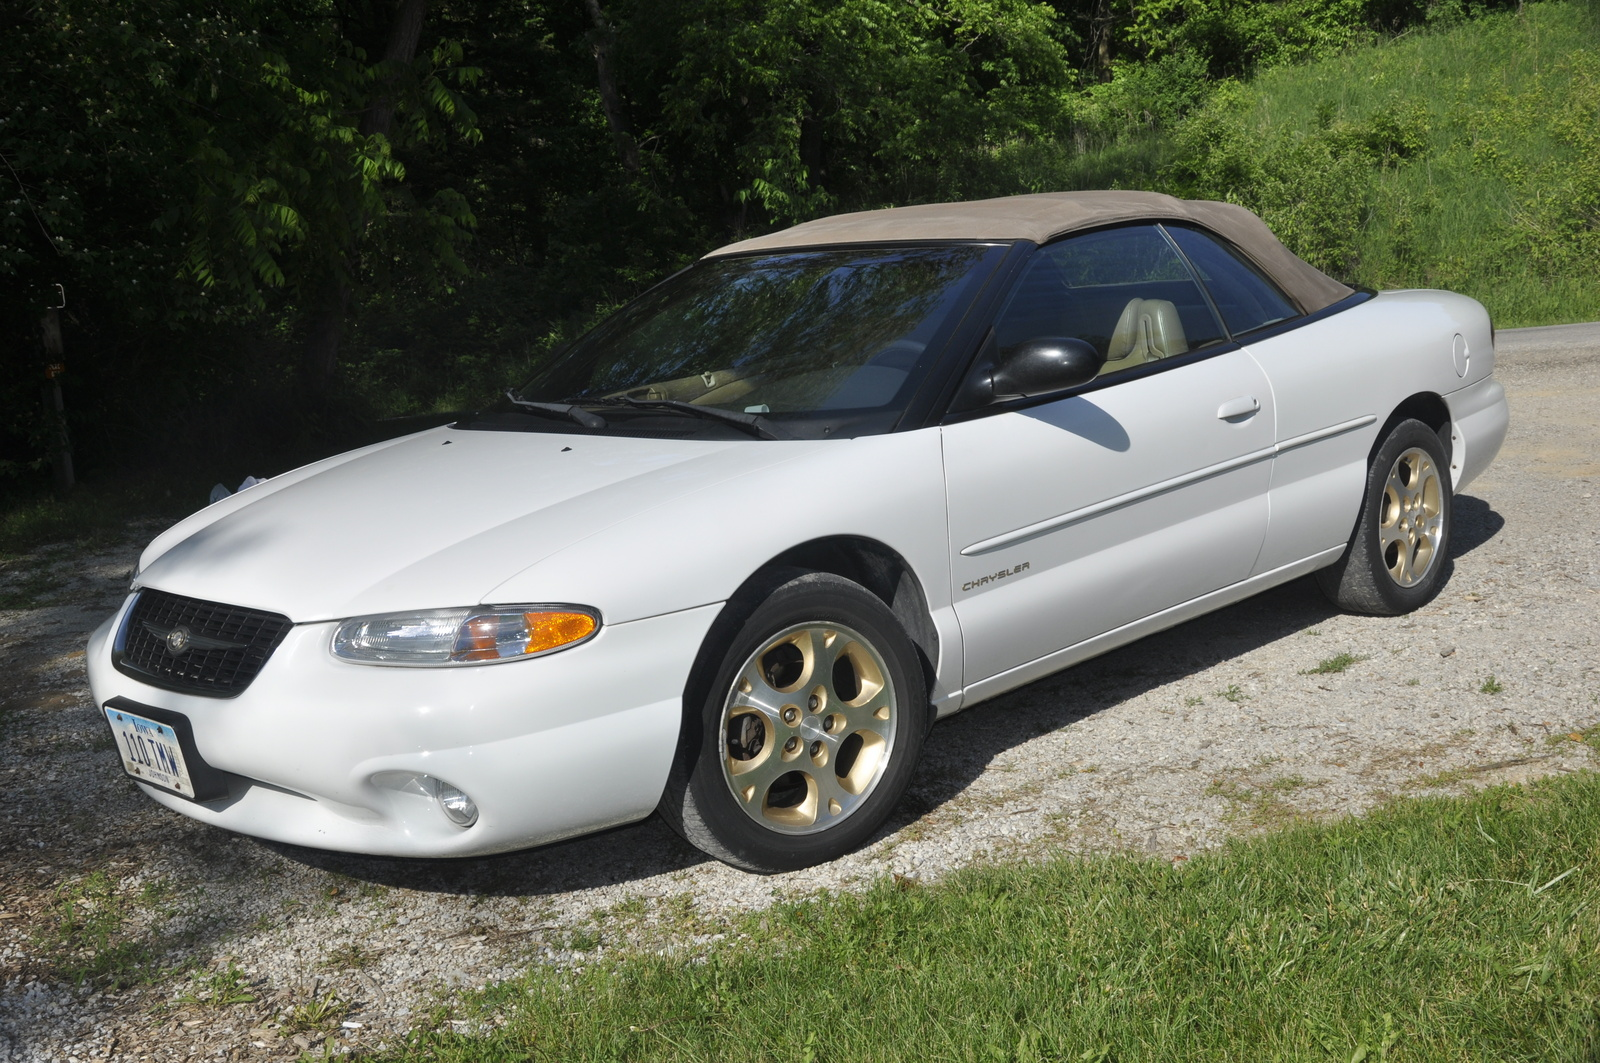 1999 chrysler sebring pictures cargurus. Cars Review. Best American Auto & Cars Review